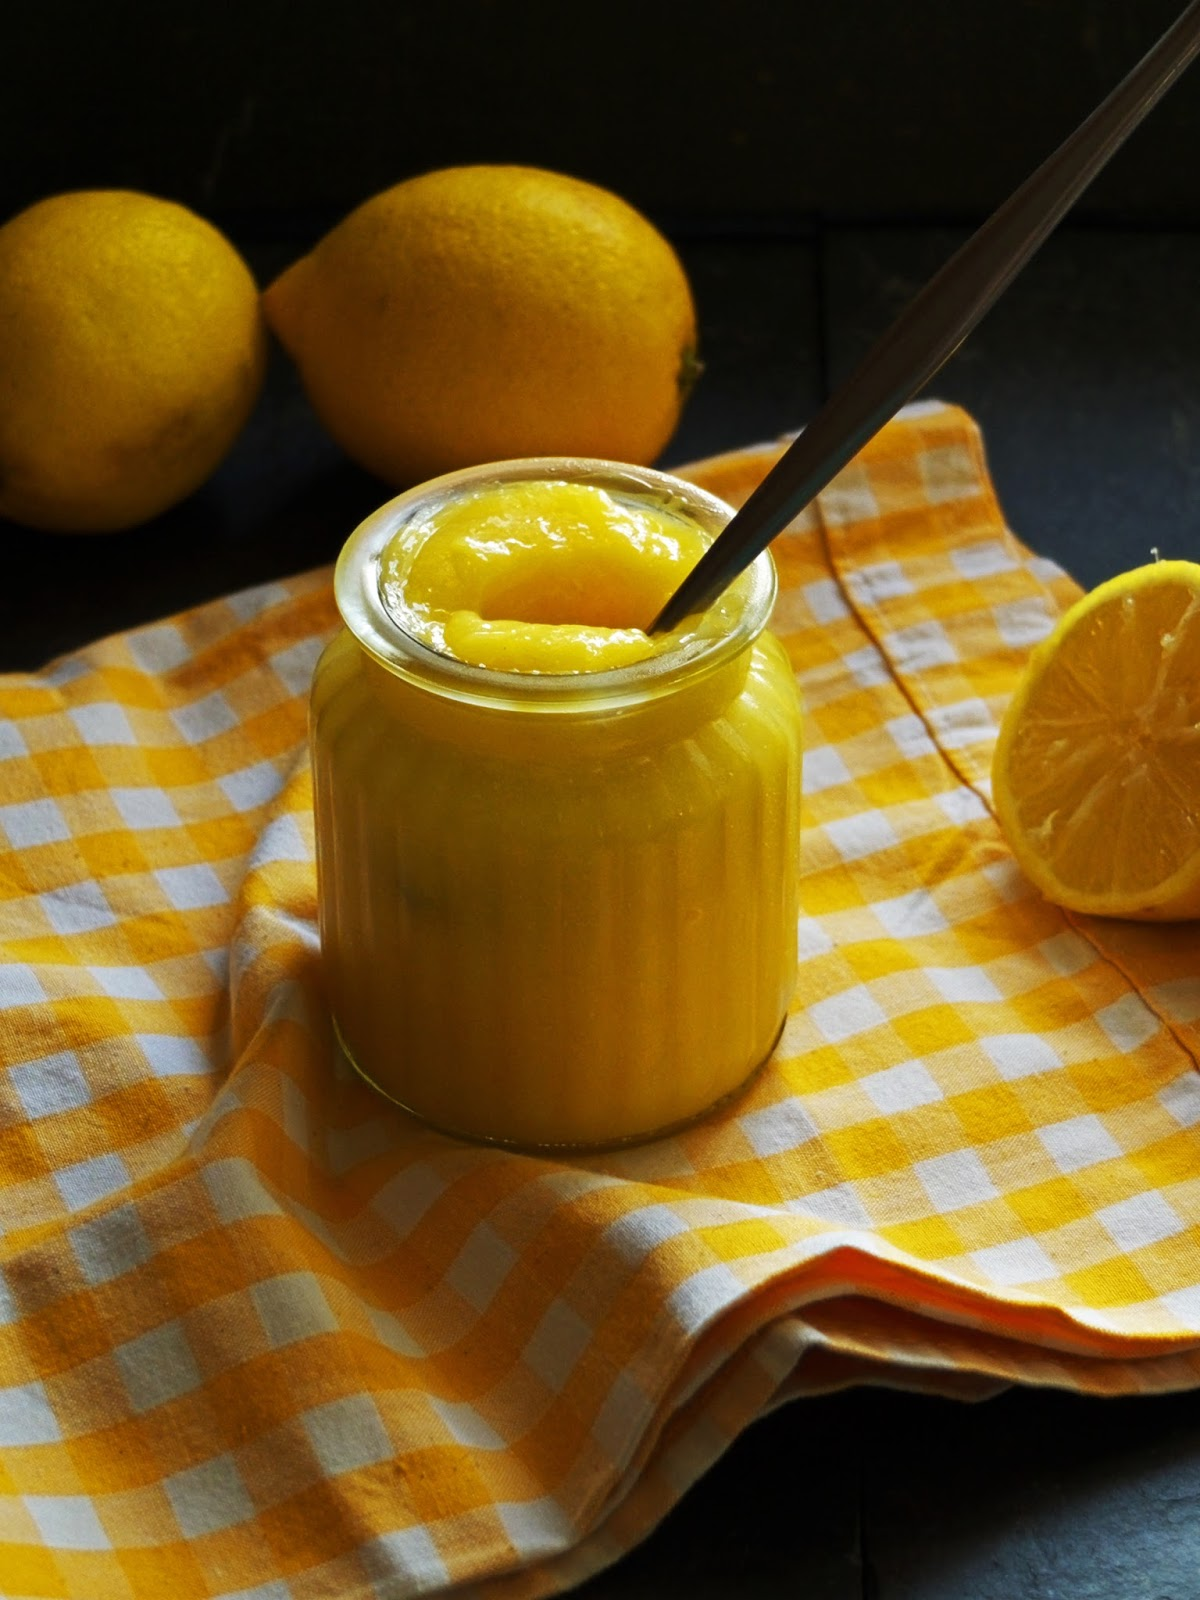 Jar of lemon curd with a spoon inside sitting on a checkered yellow tea towel.